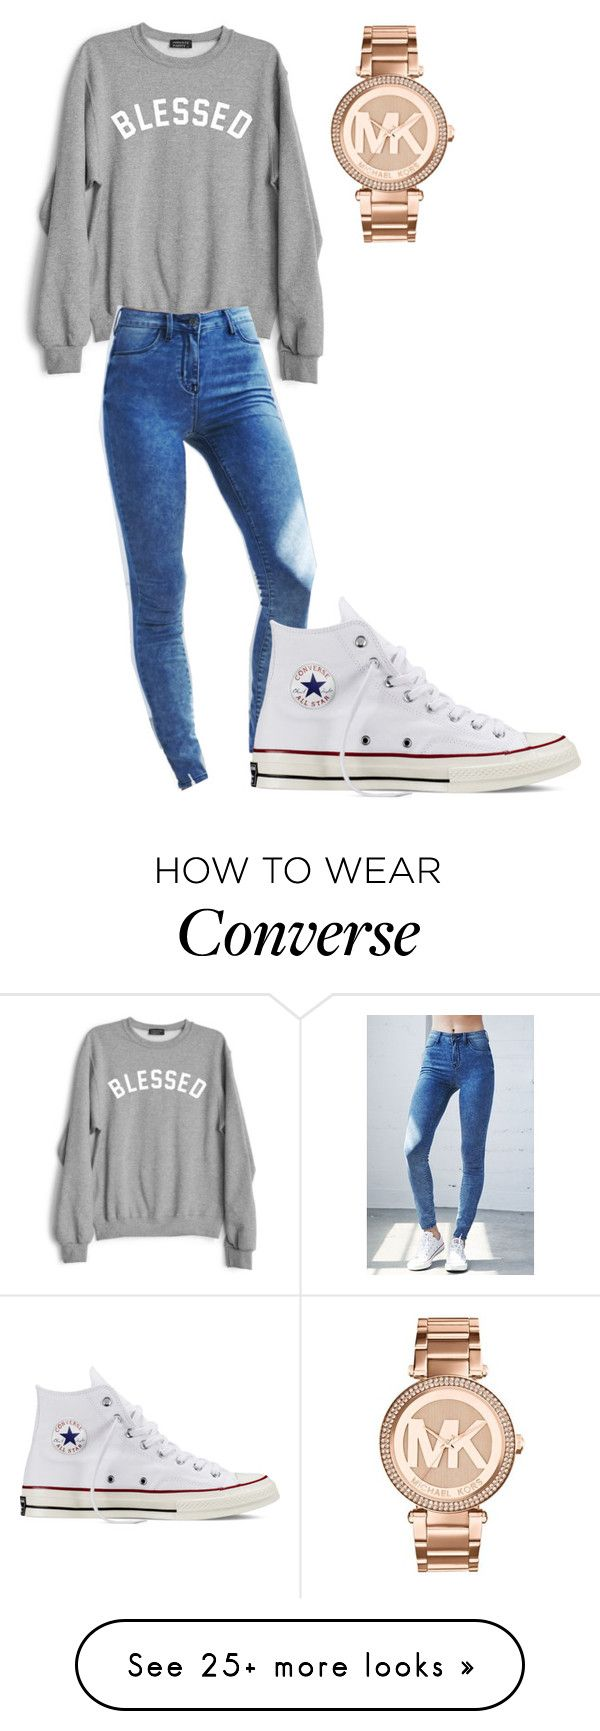 """""""Untitled #1"""" by kameron-savell on Polyvore featuring Private Party, Bullhead Denim Co., Converse and Michael Kors"""